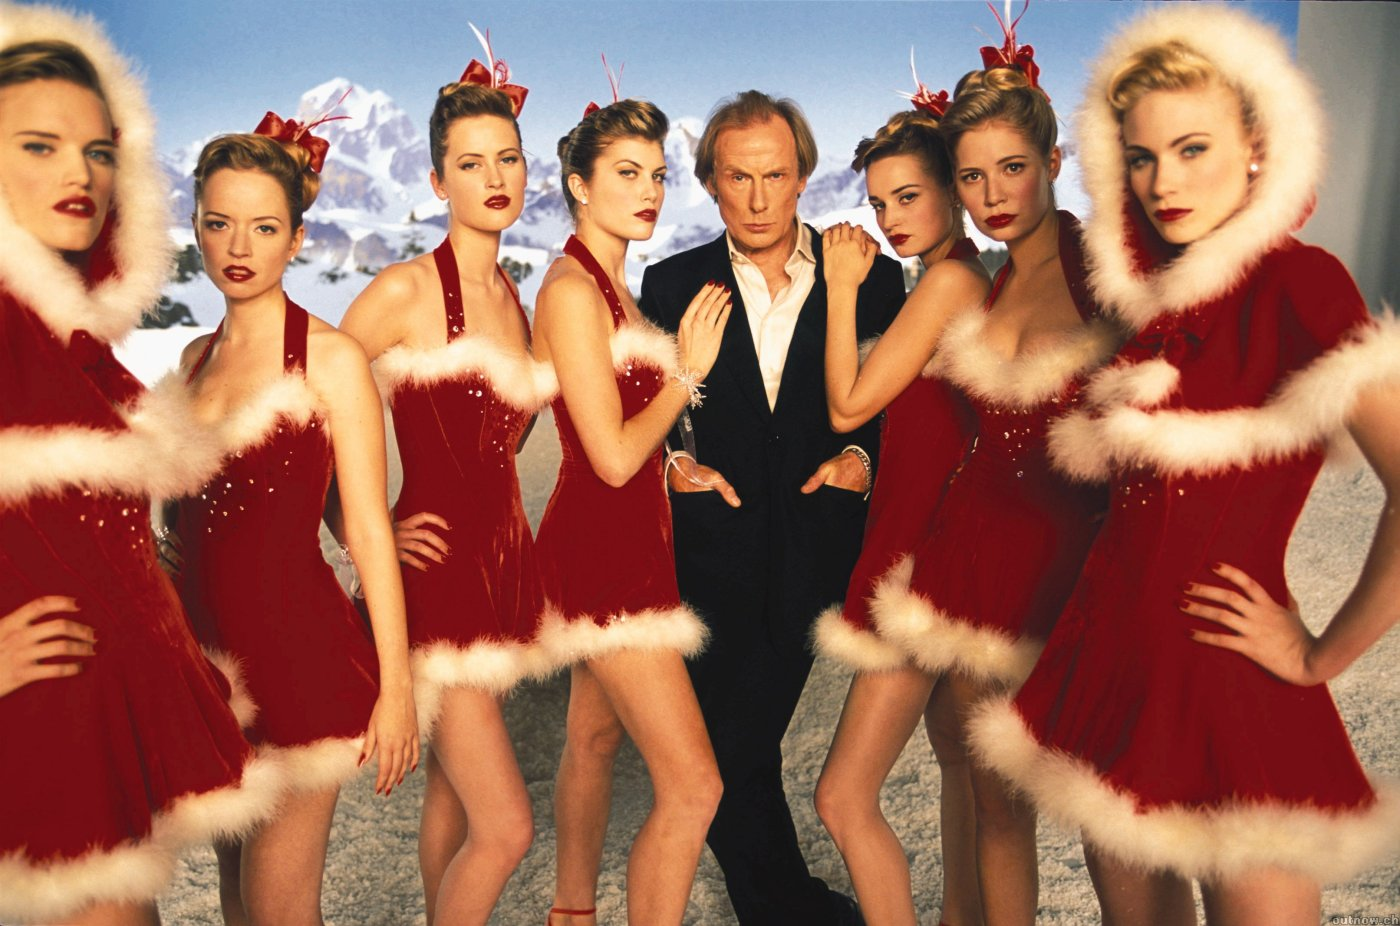 http://2.bp.blogspot.com/-rfVlpUZW3Ks/TdCRnZvQdiI/AAAAAAAAHow/pbLeeC4t7QY/s1600/love_actually_movie_image_bill_nighy_01.jpg